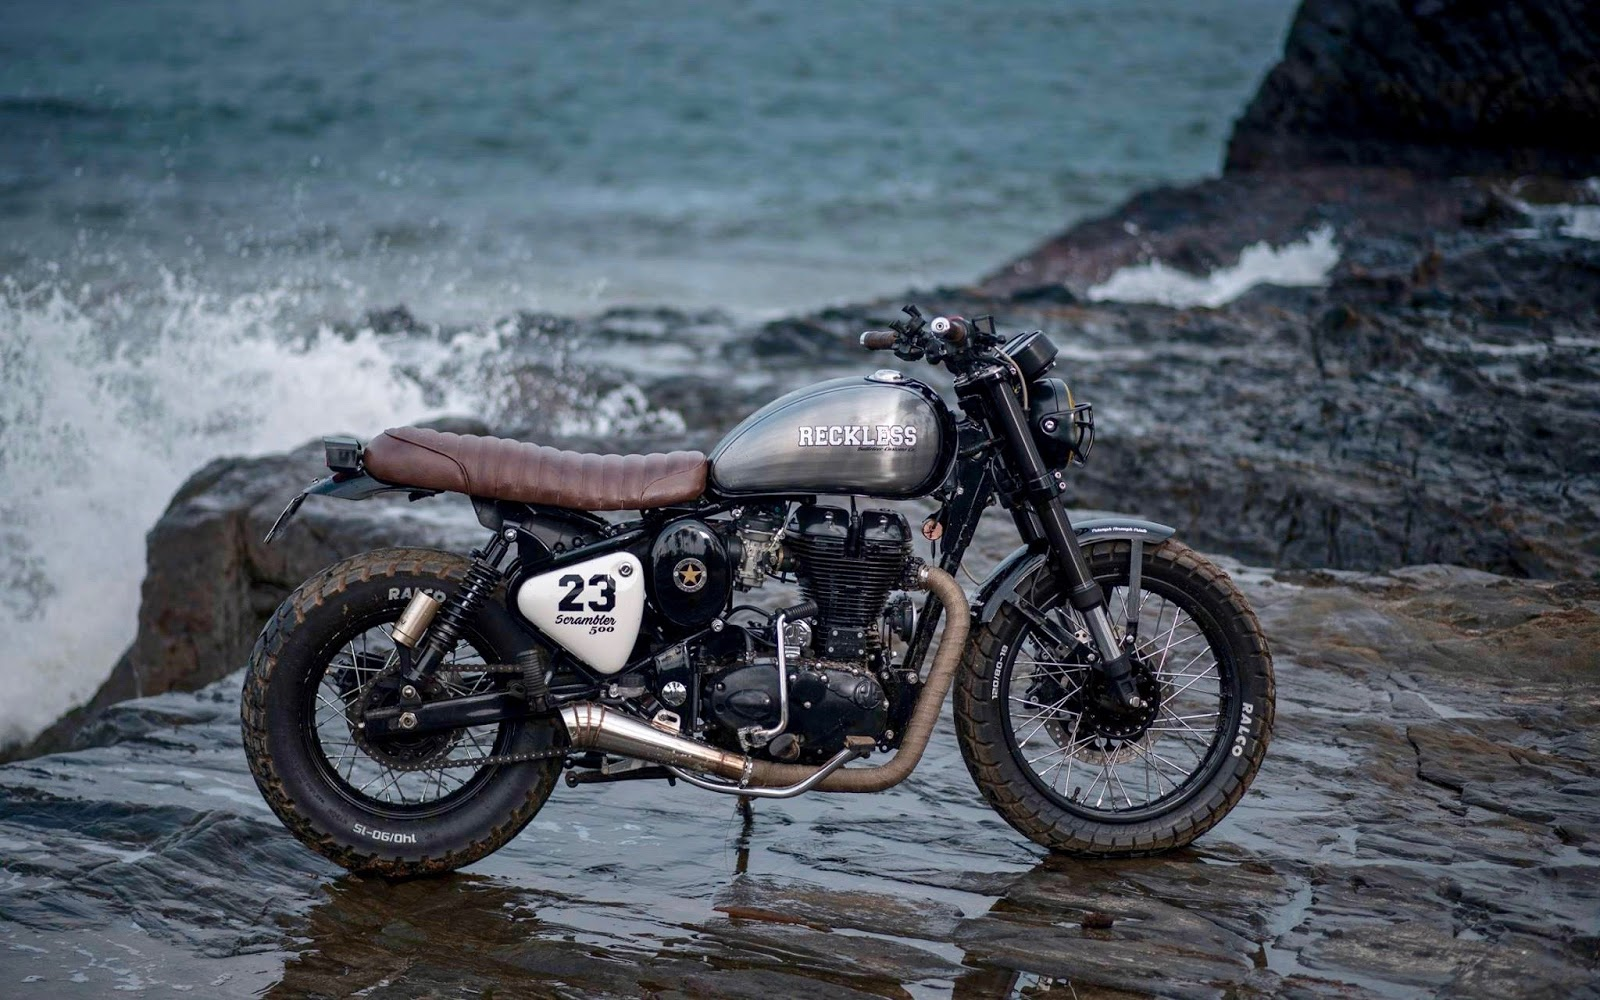 Reckless | Inazuma café racer